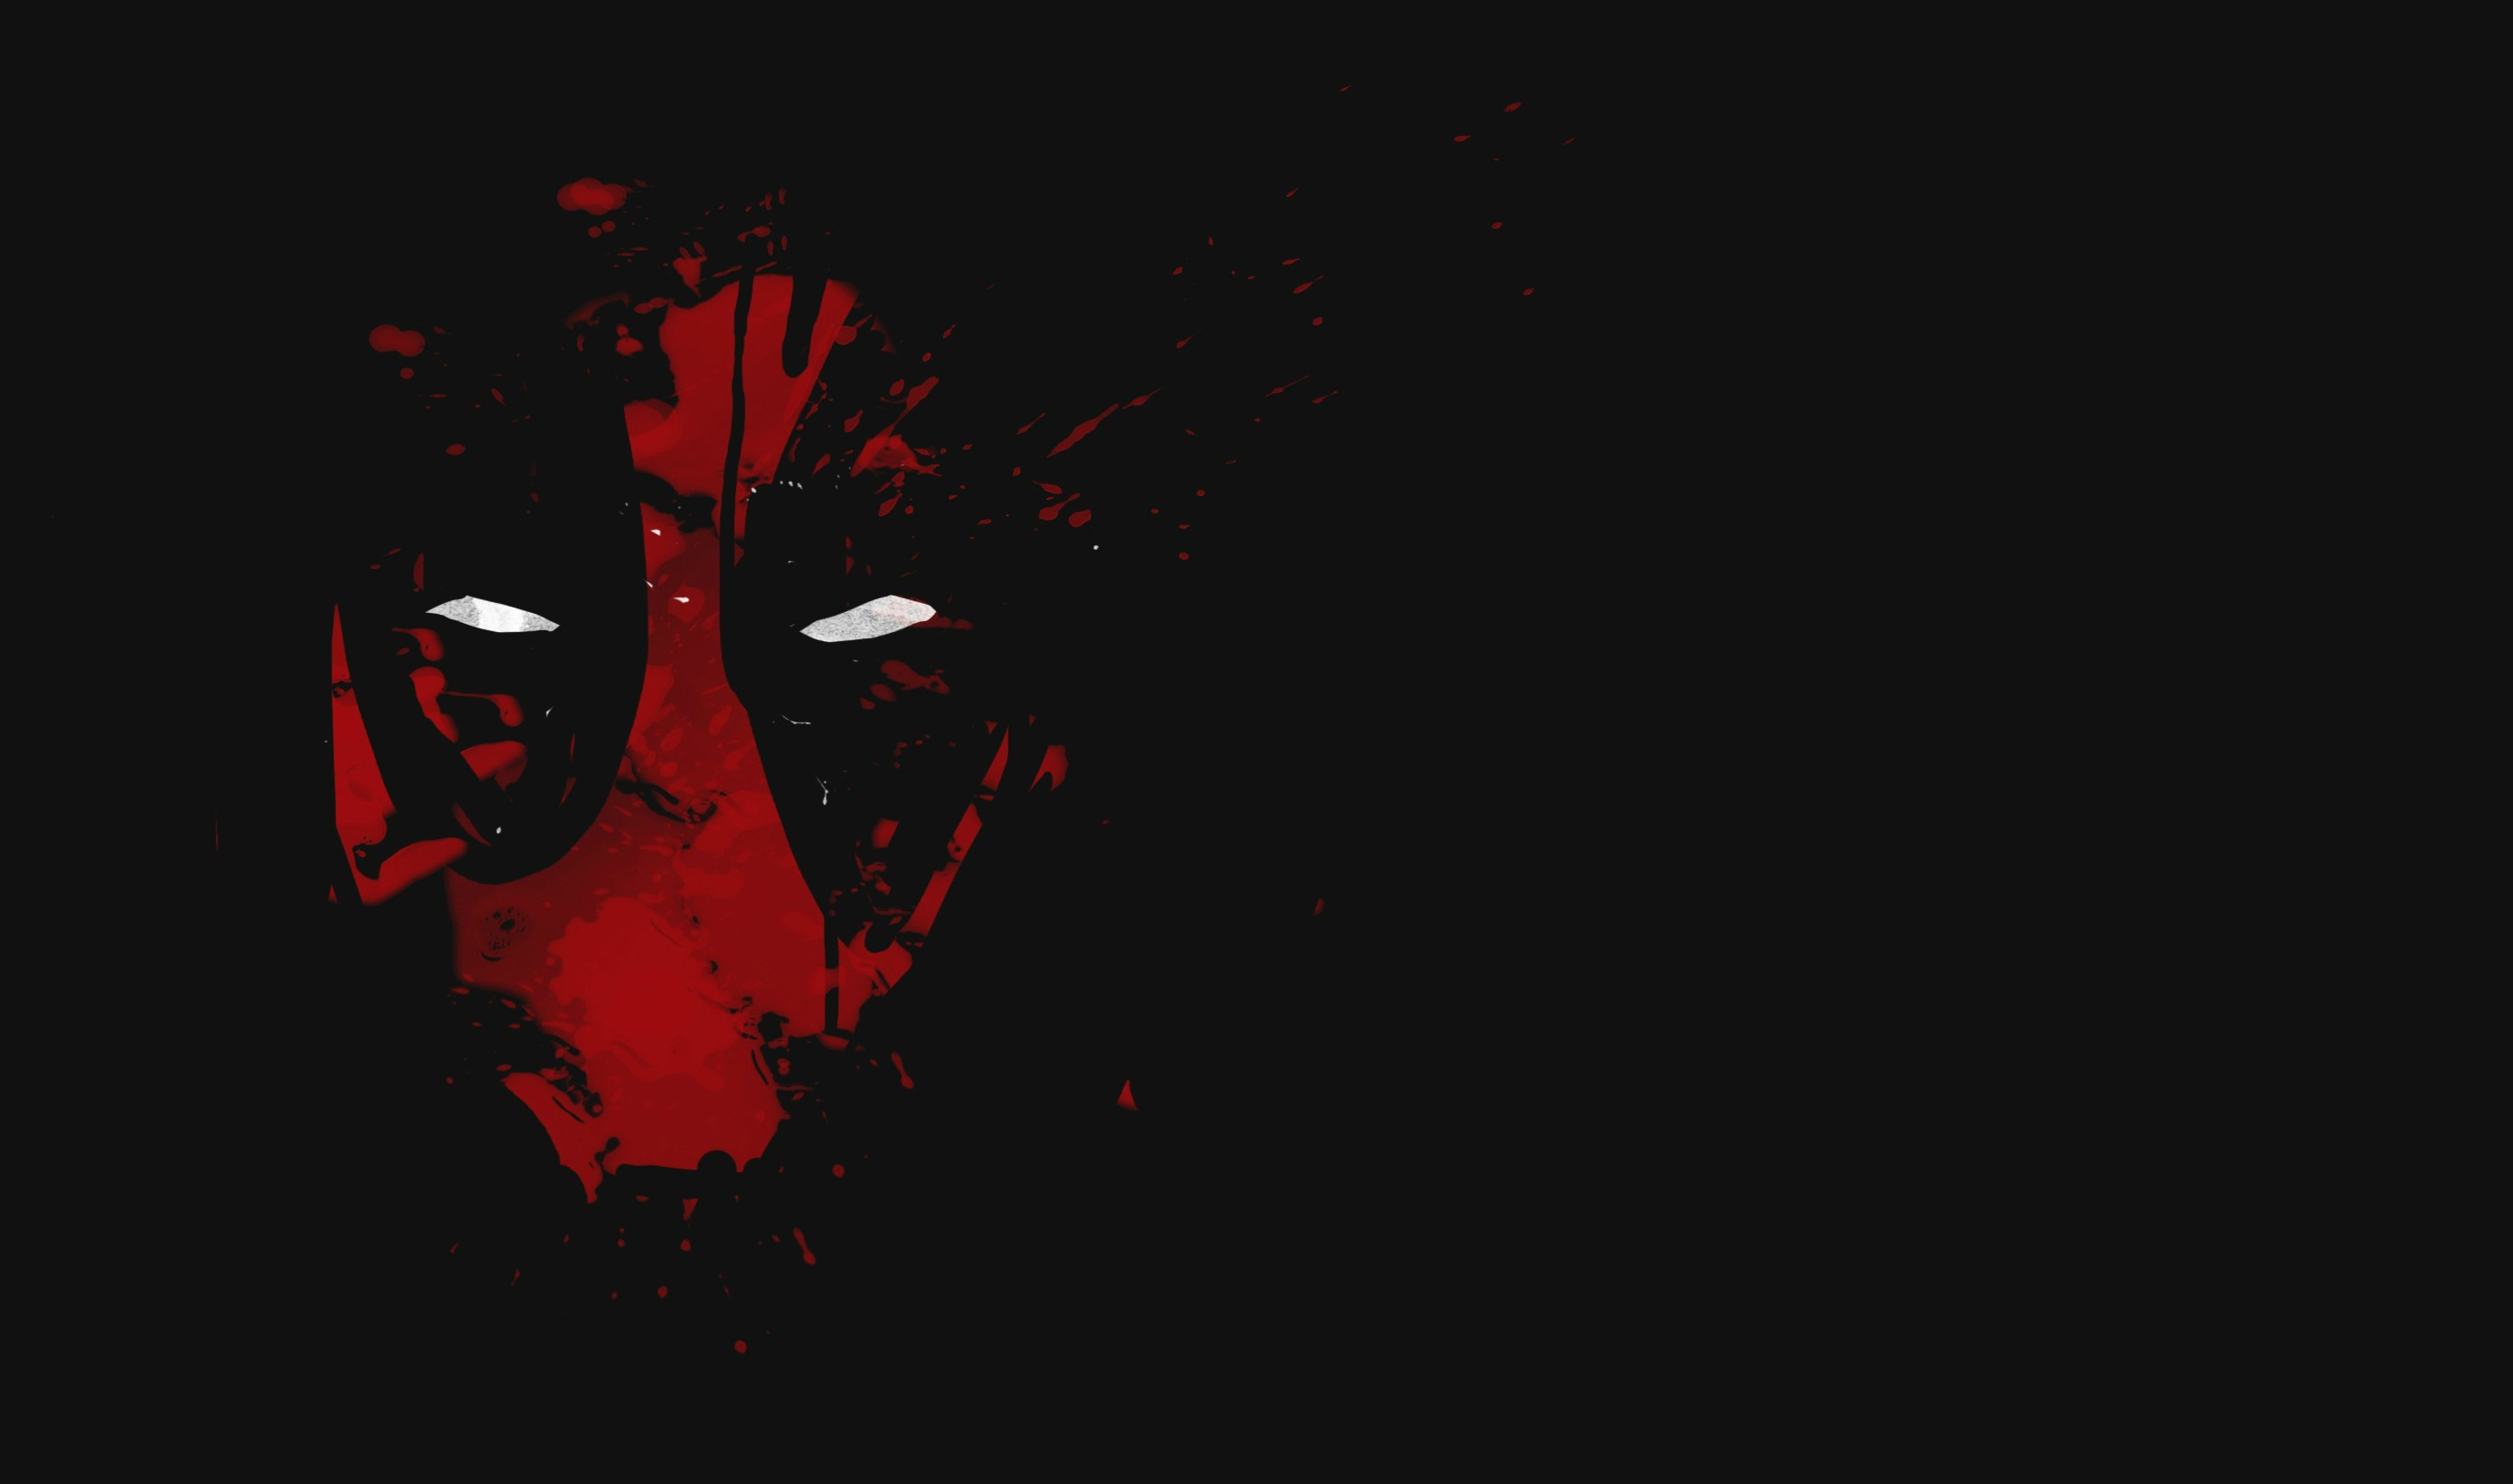 deadpool hd wallpapers - sf wallpaper